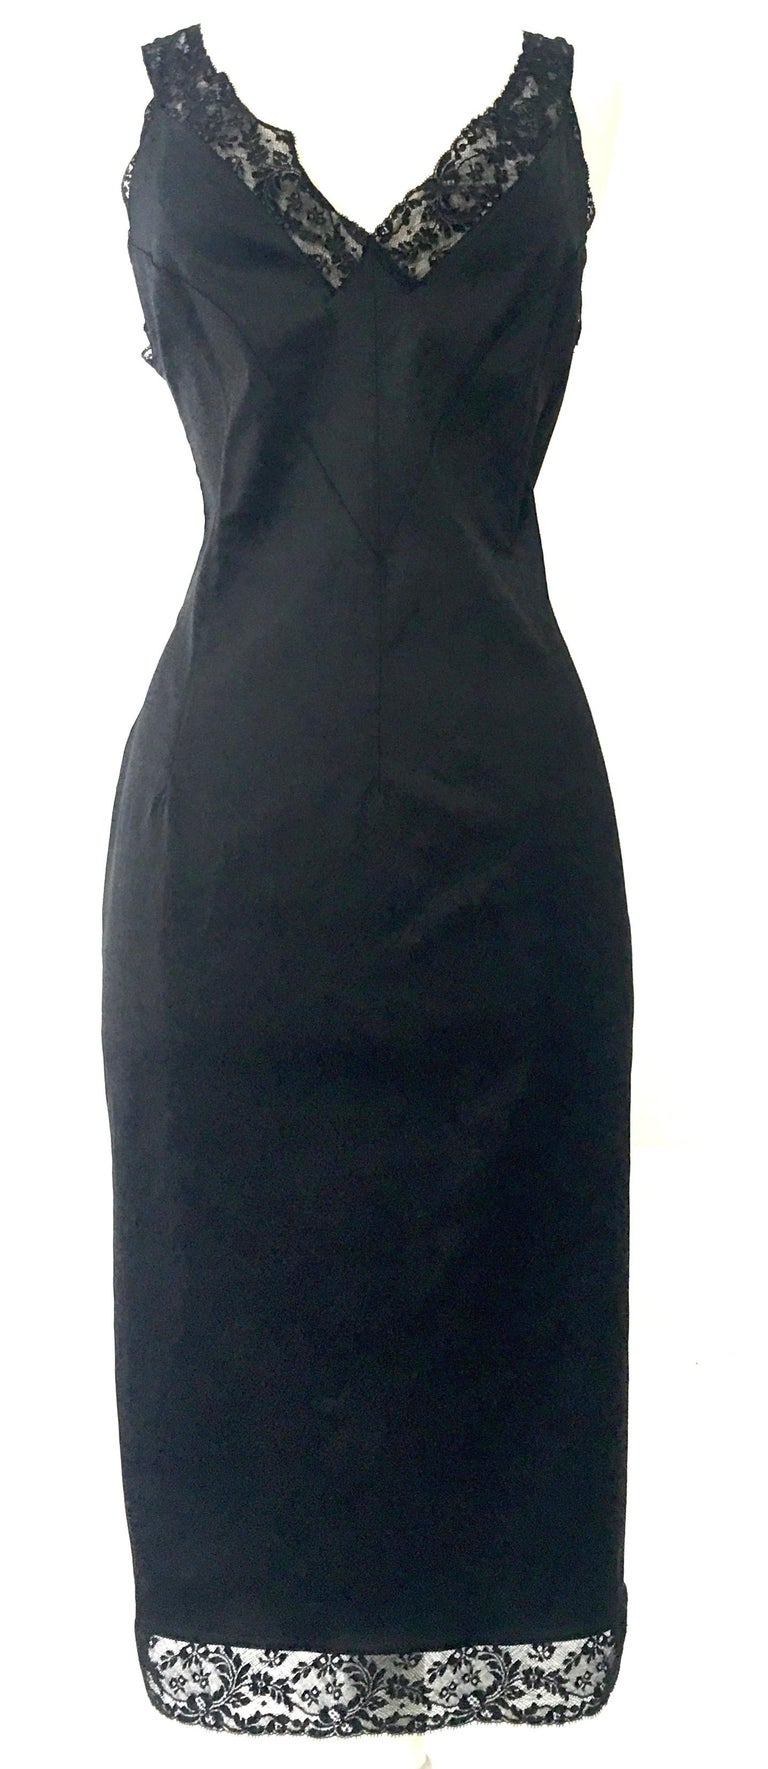 90'S Iconic Italian Dolce & Gabbana (D&G) Little Black Slip Style Dress. This forgiving form fitted stretch black